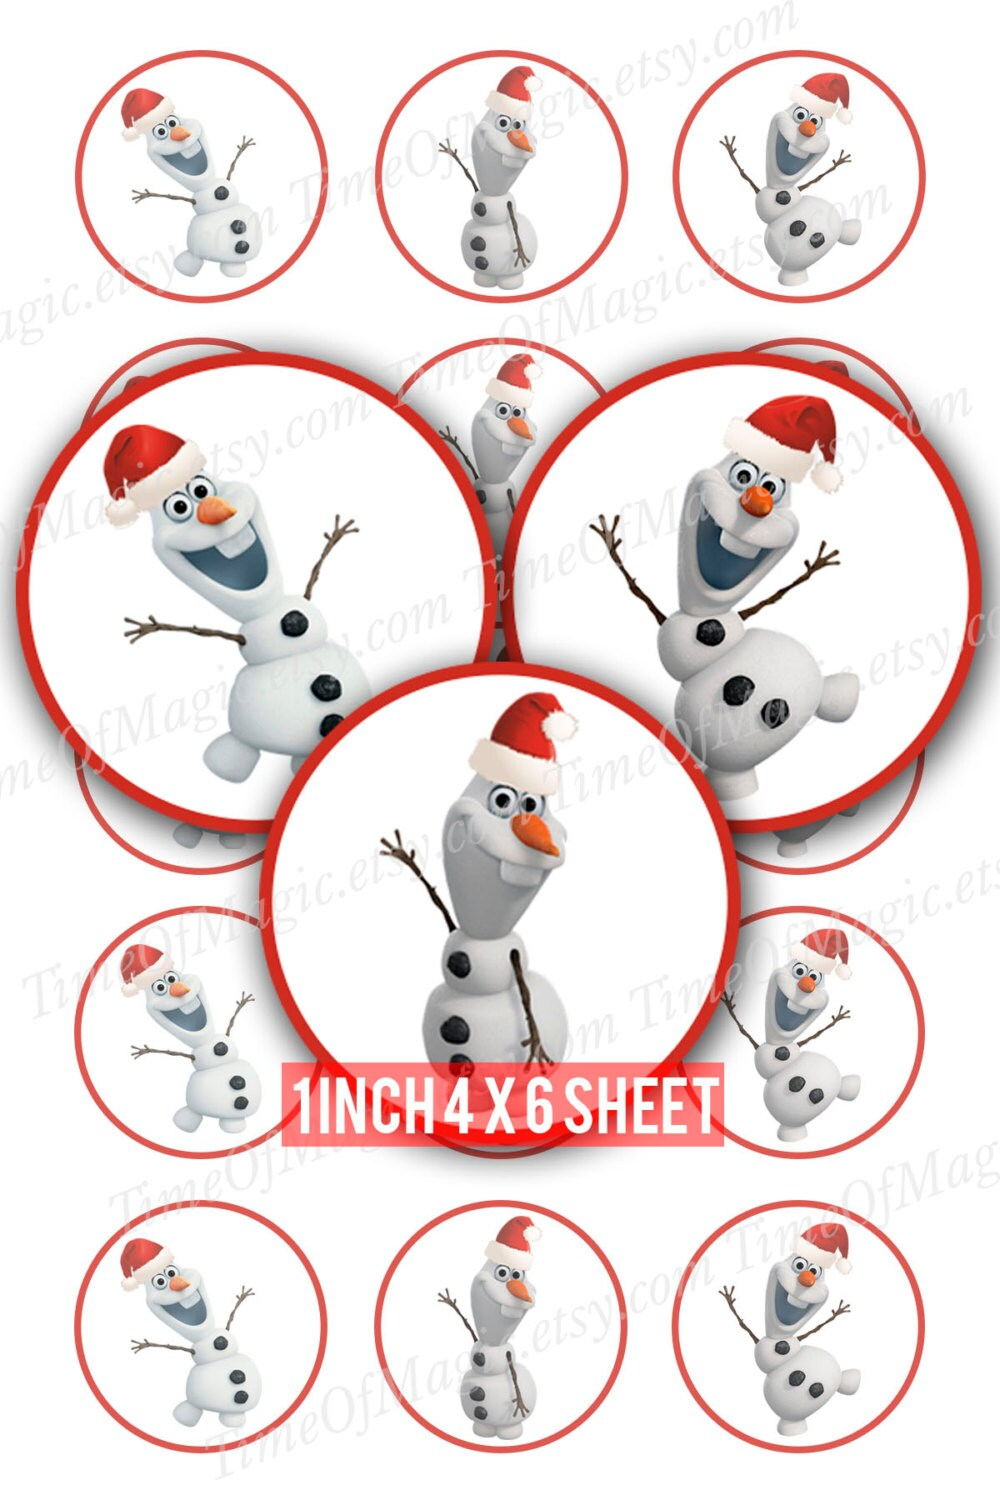 Olaf Merry Christmas Digital Collage Sheet Frozen 1 inch | Etsy